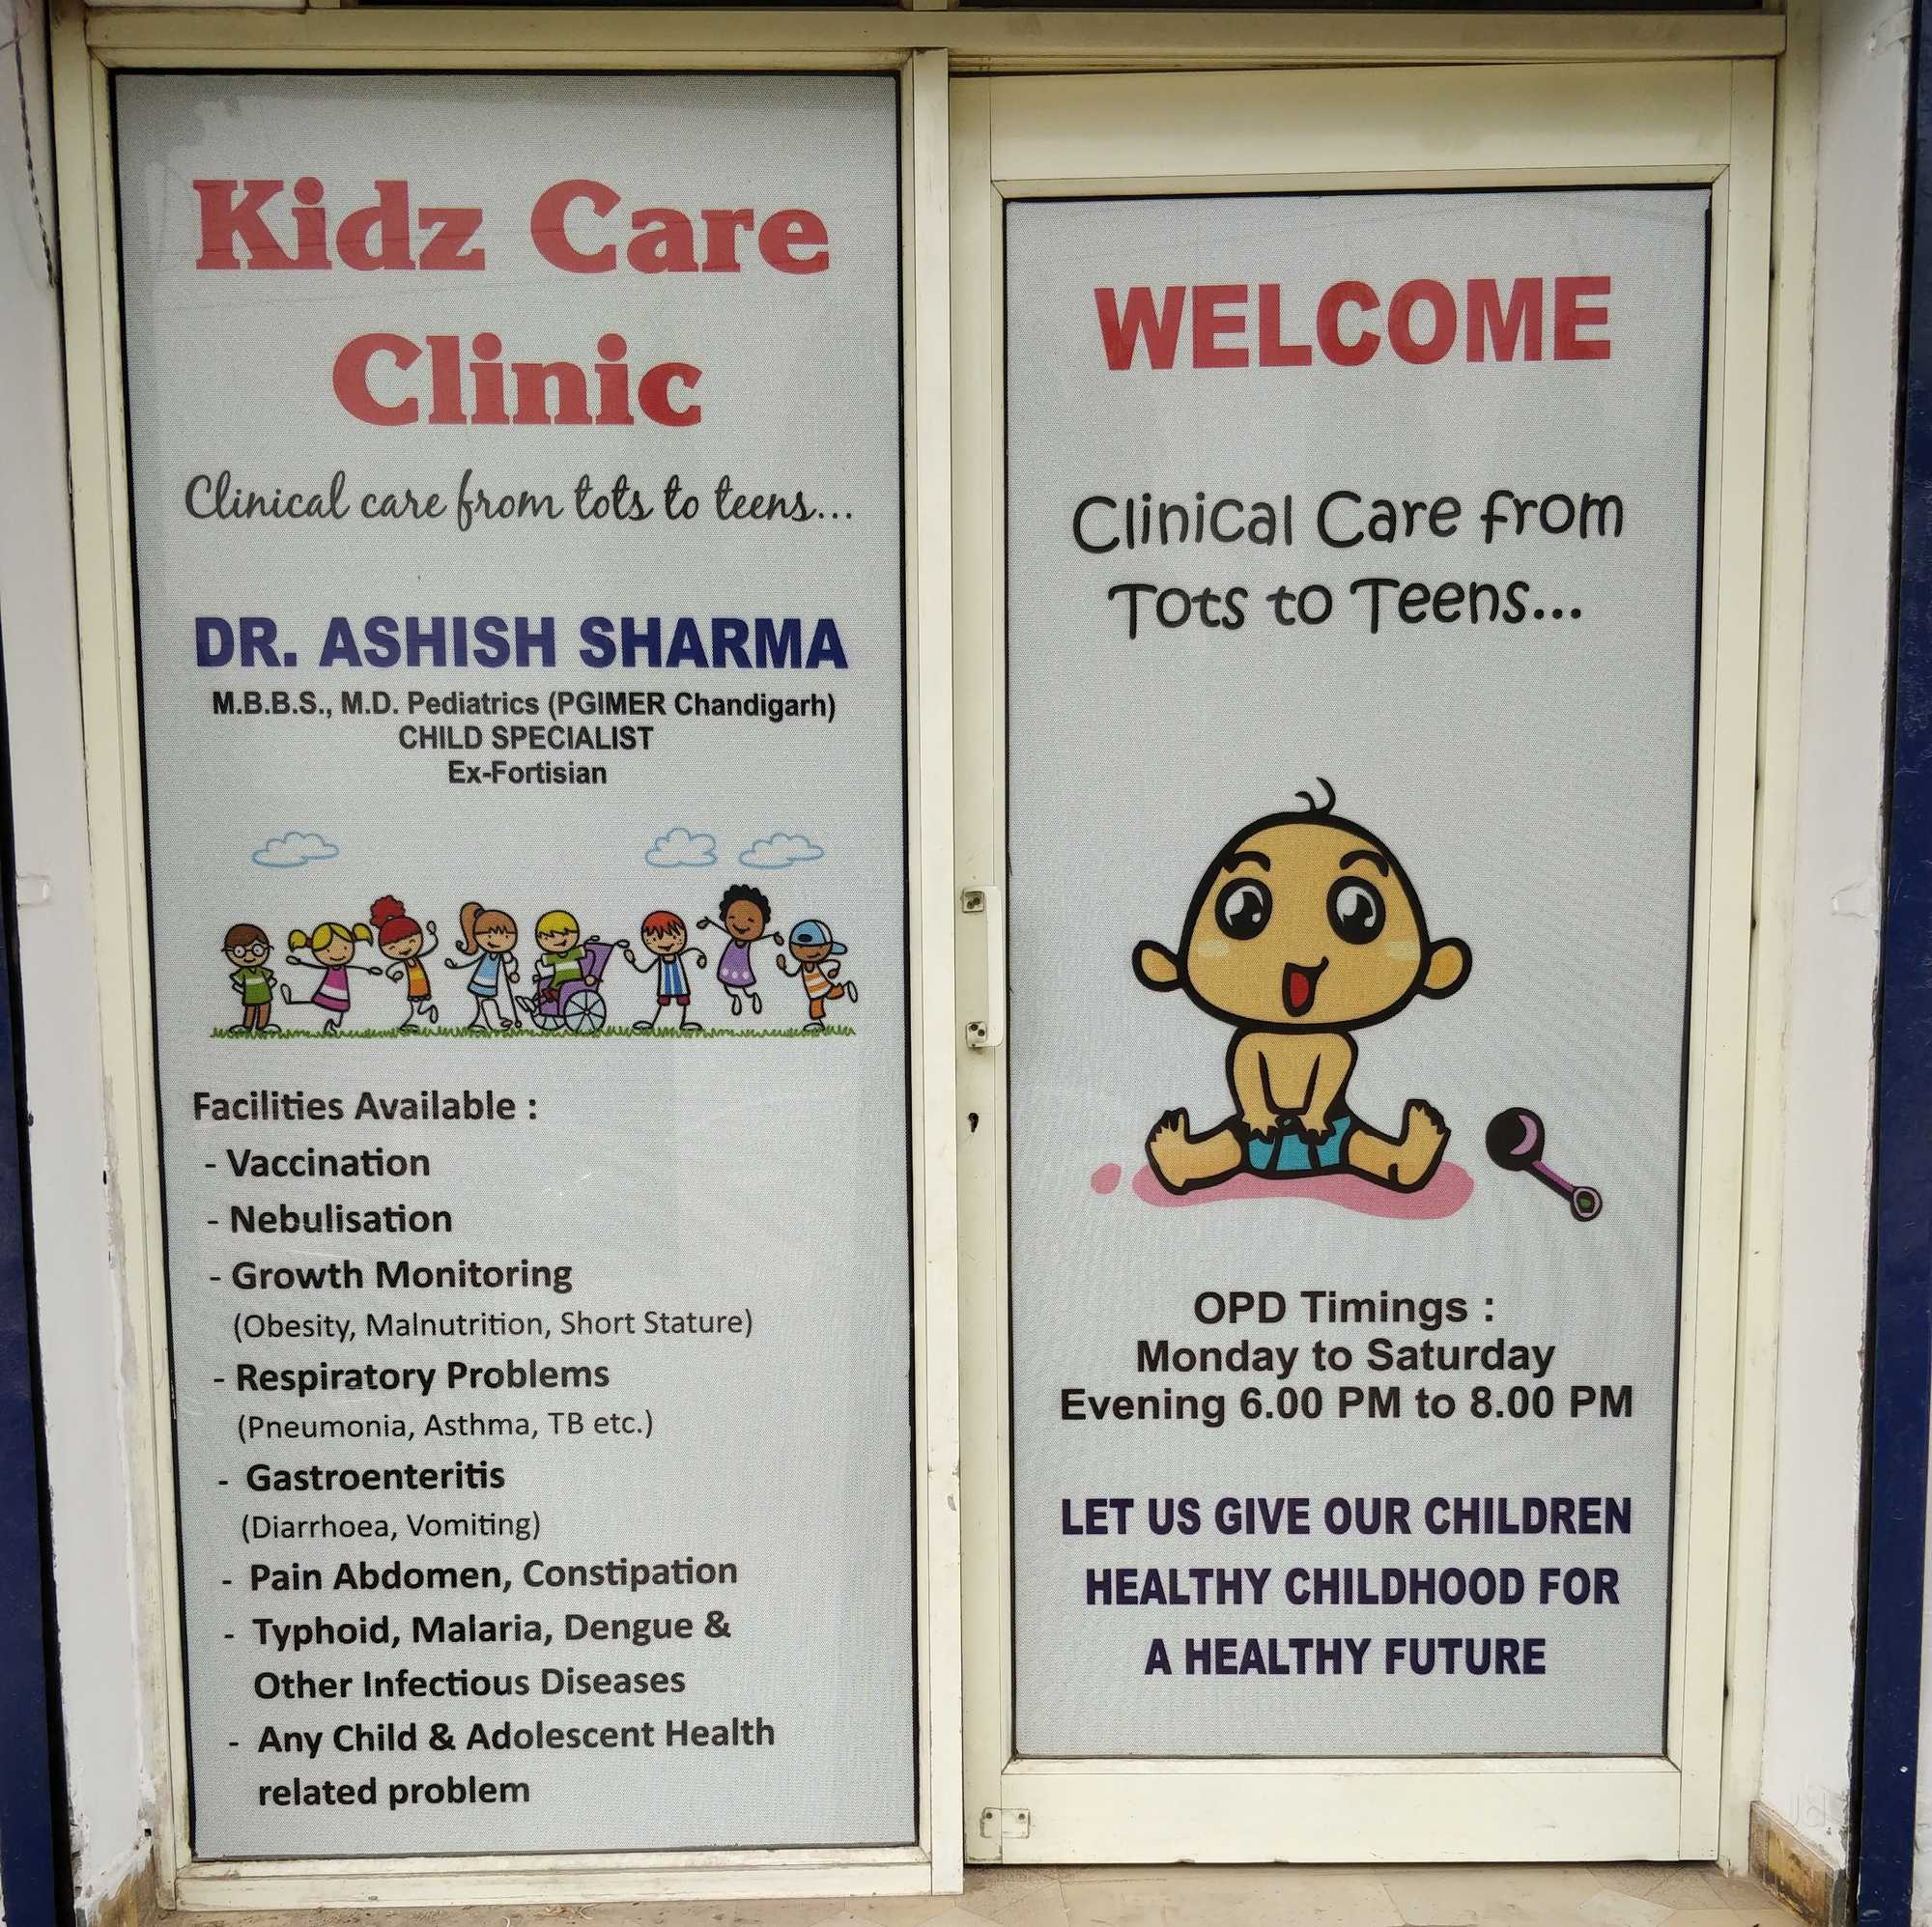 Top 100 Pediatricians in Chandigarh - Best Child Specialist